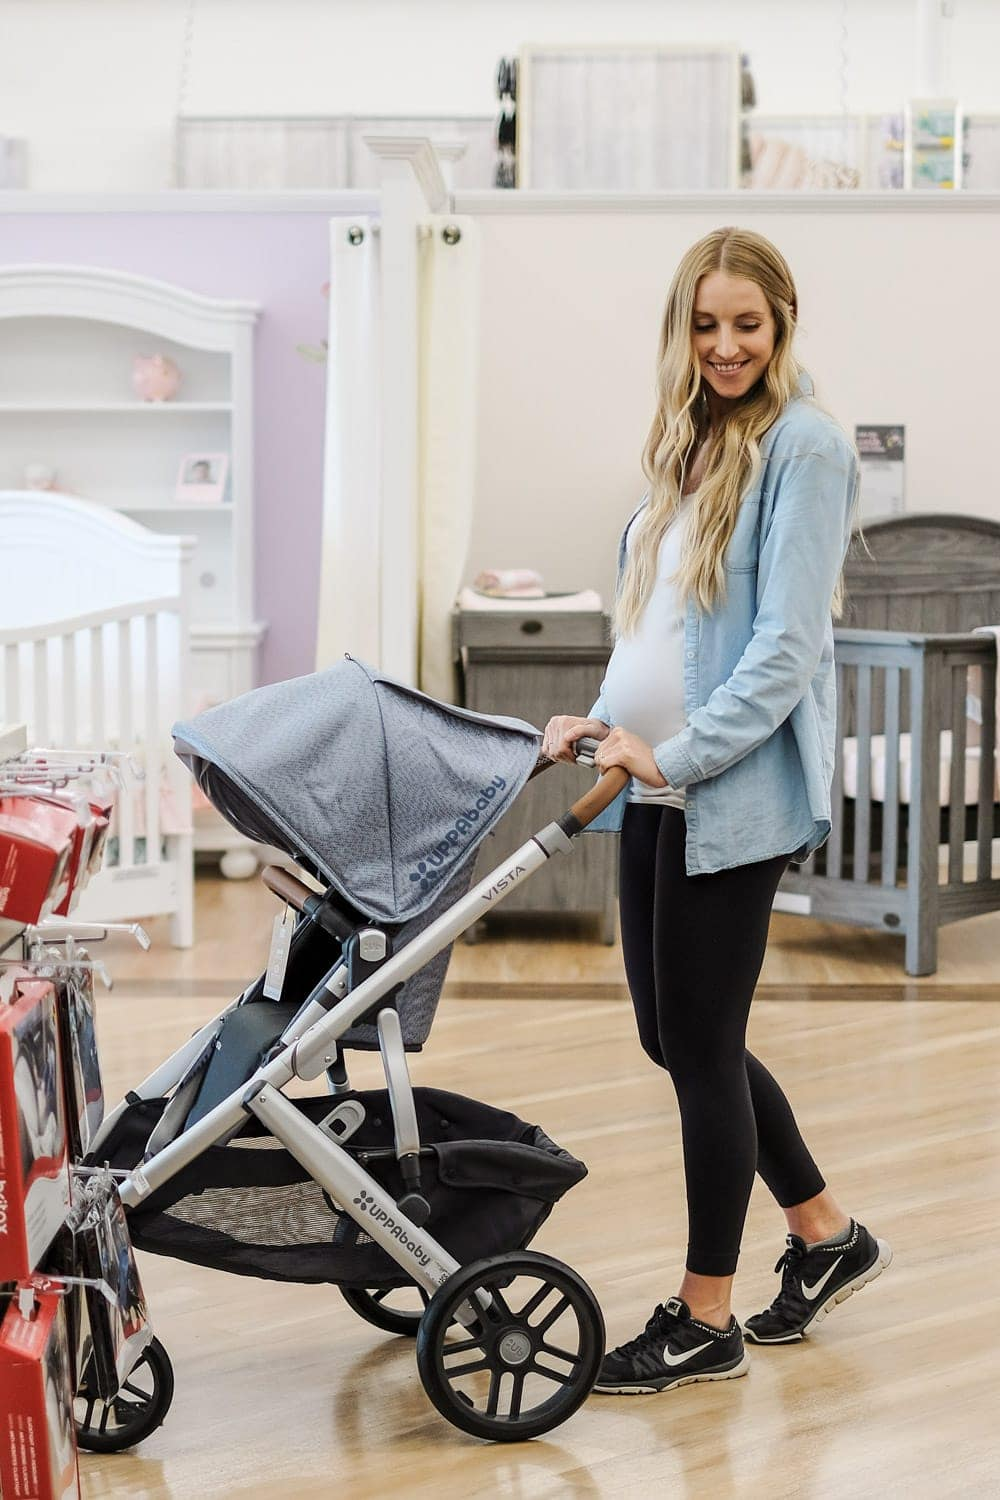 blonde woman pushing stroller in store